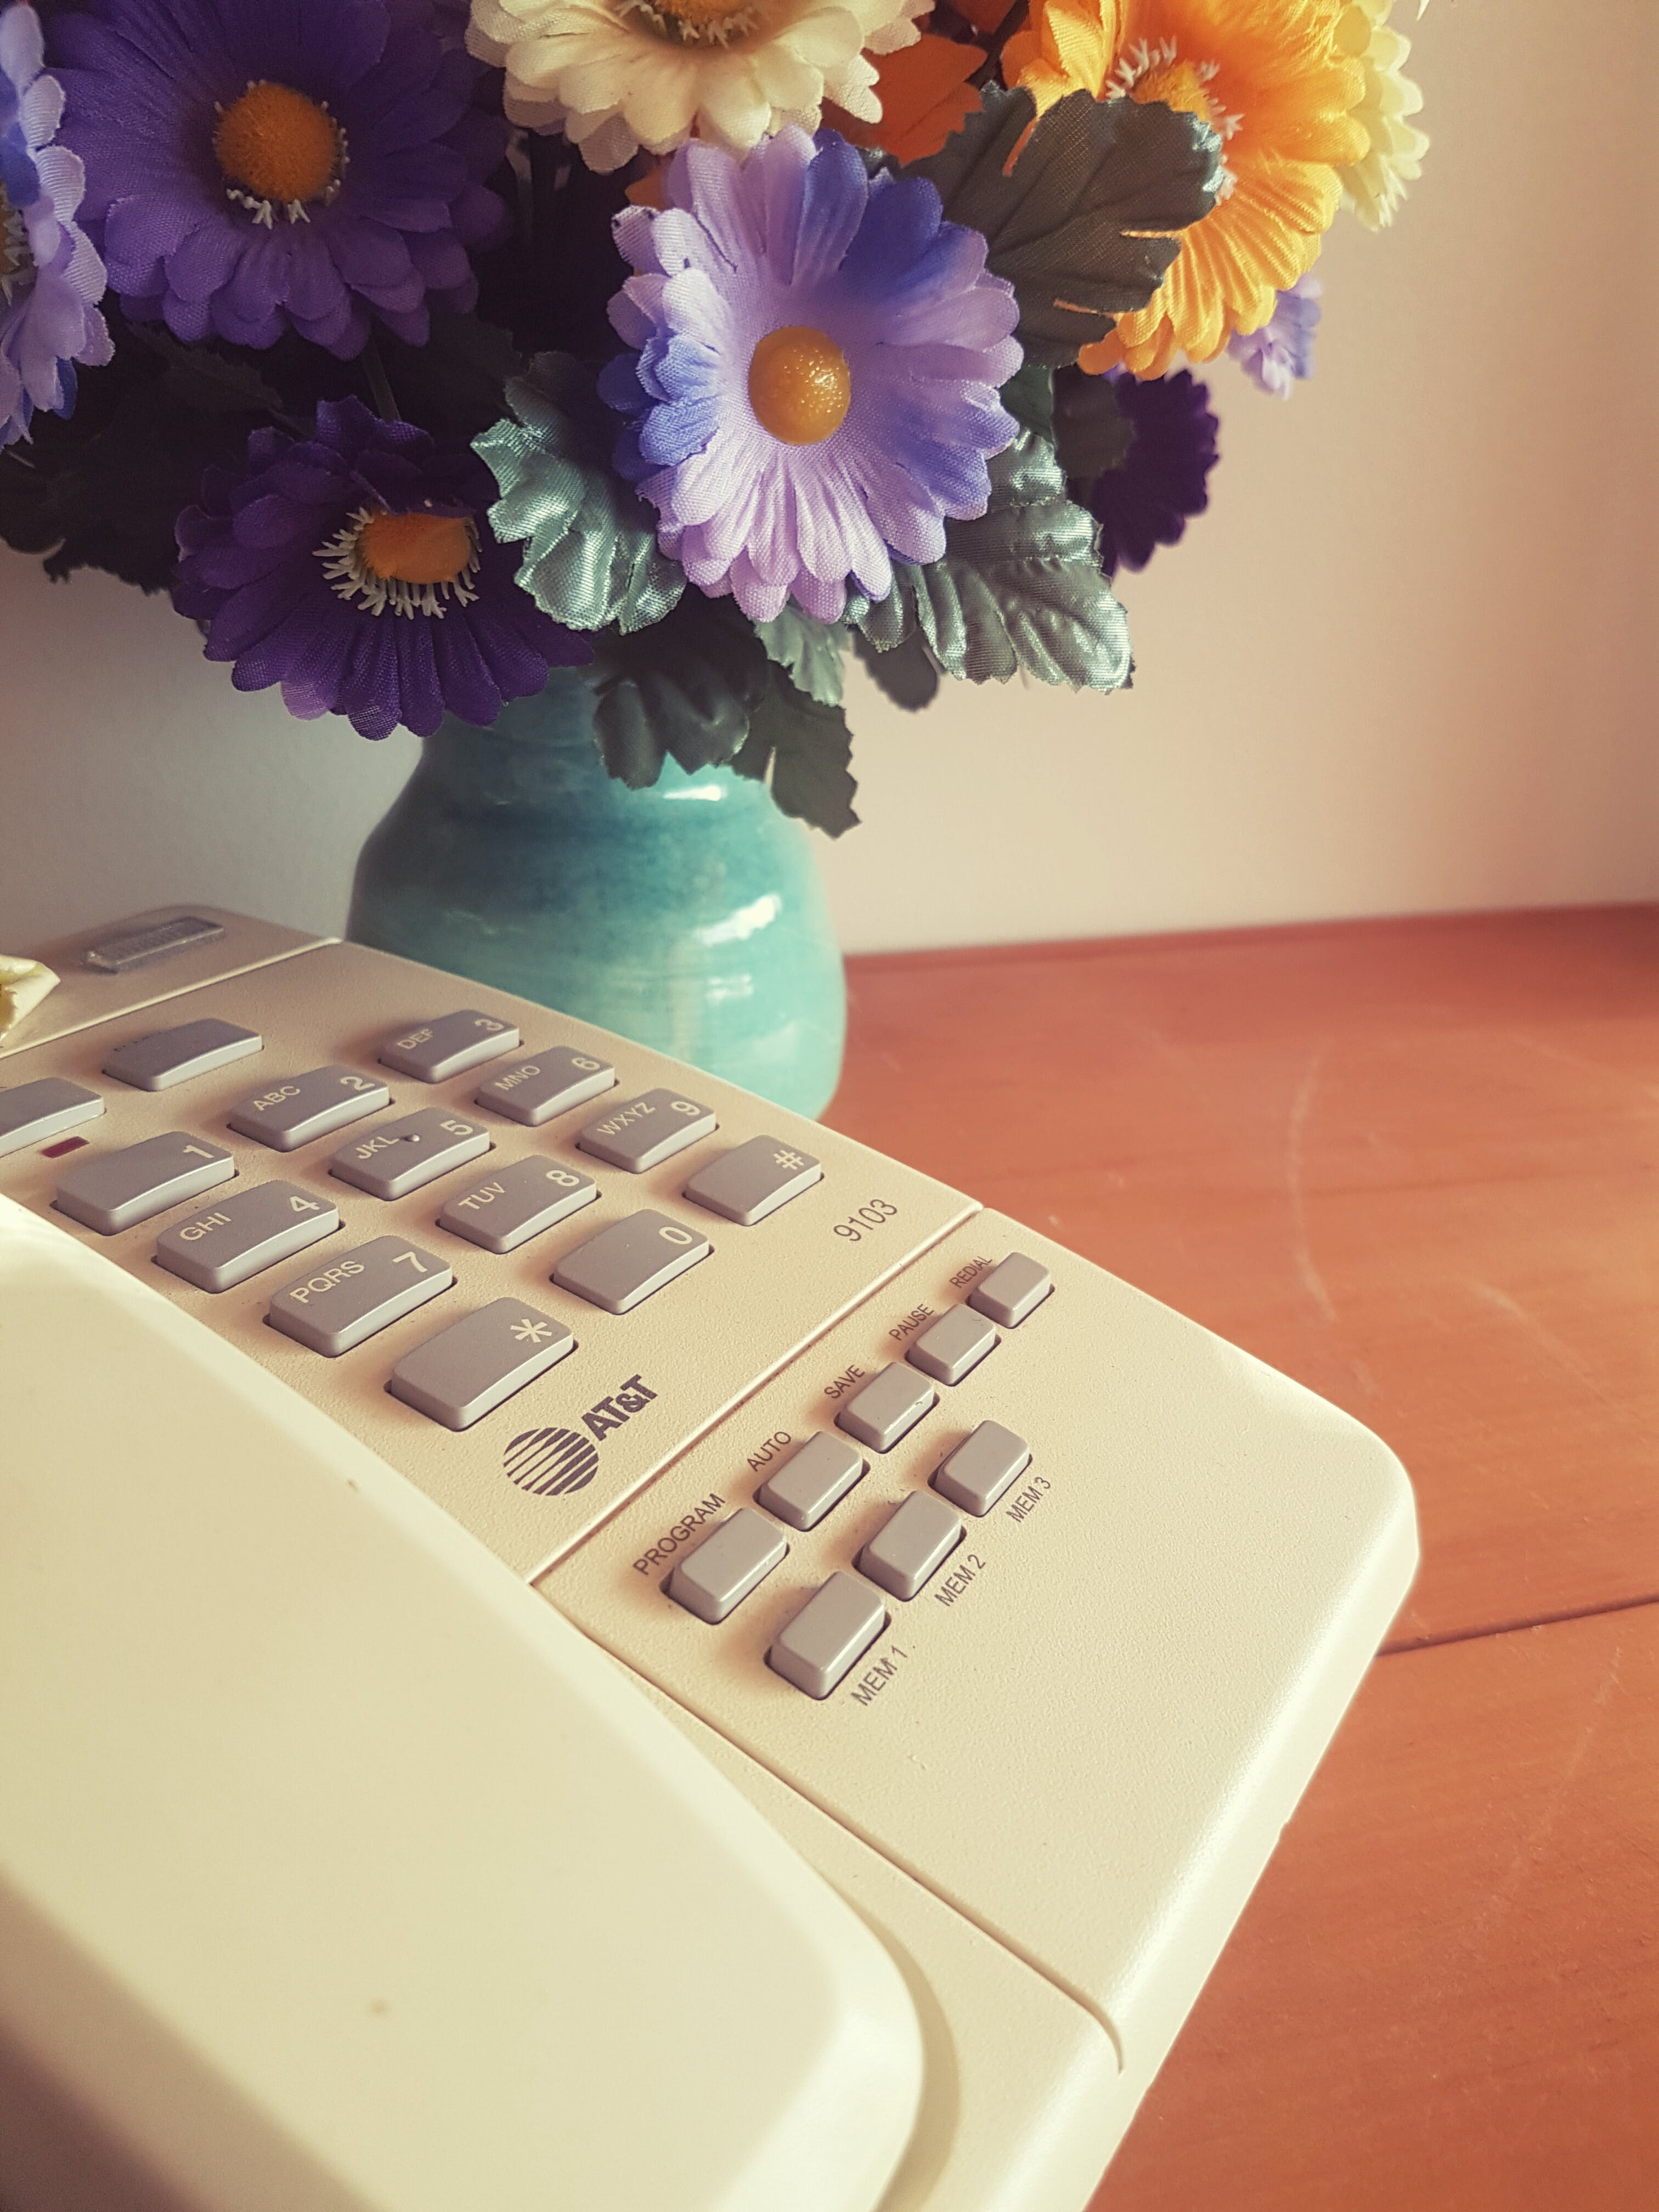 Free stock photo of artificial flowers, phone, sidetable, talk